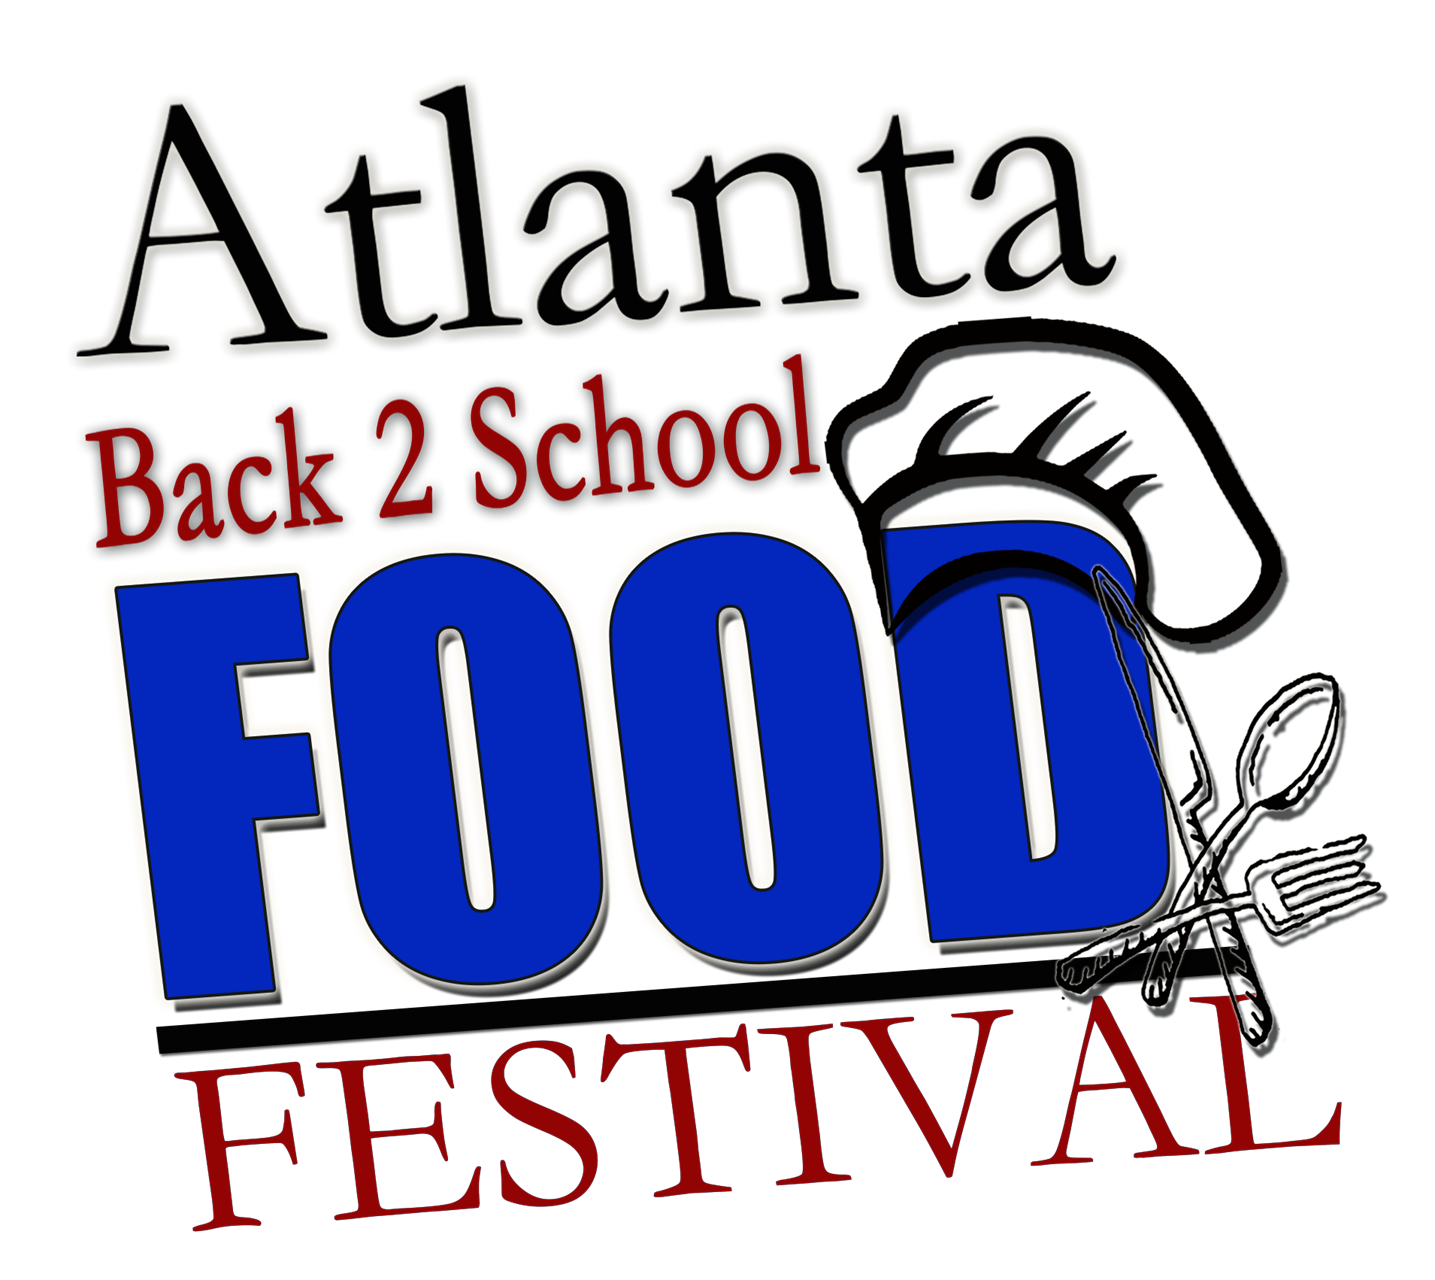 Atlanta Food Festival Website